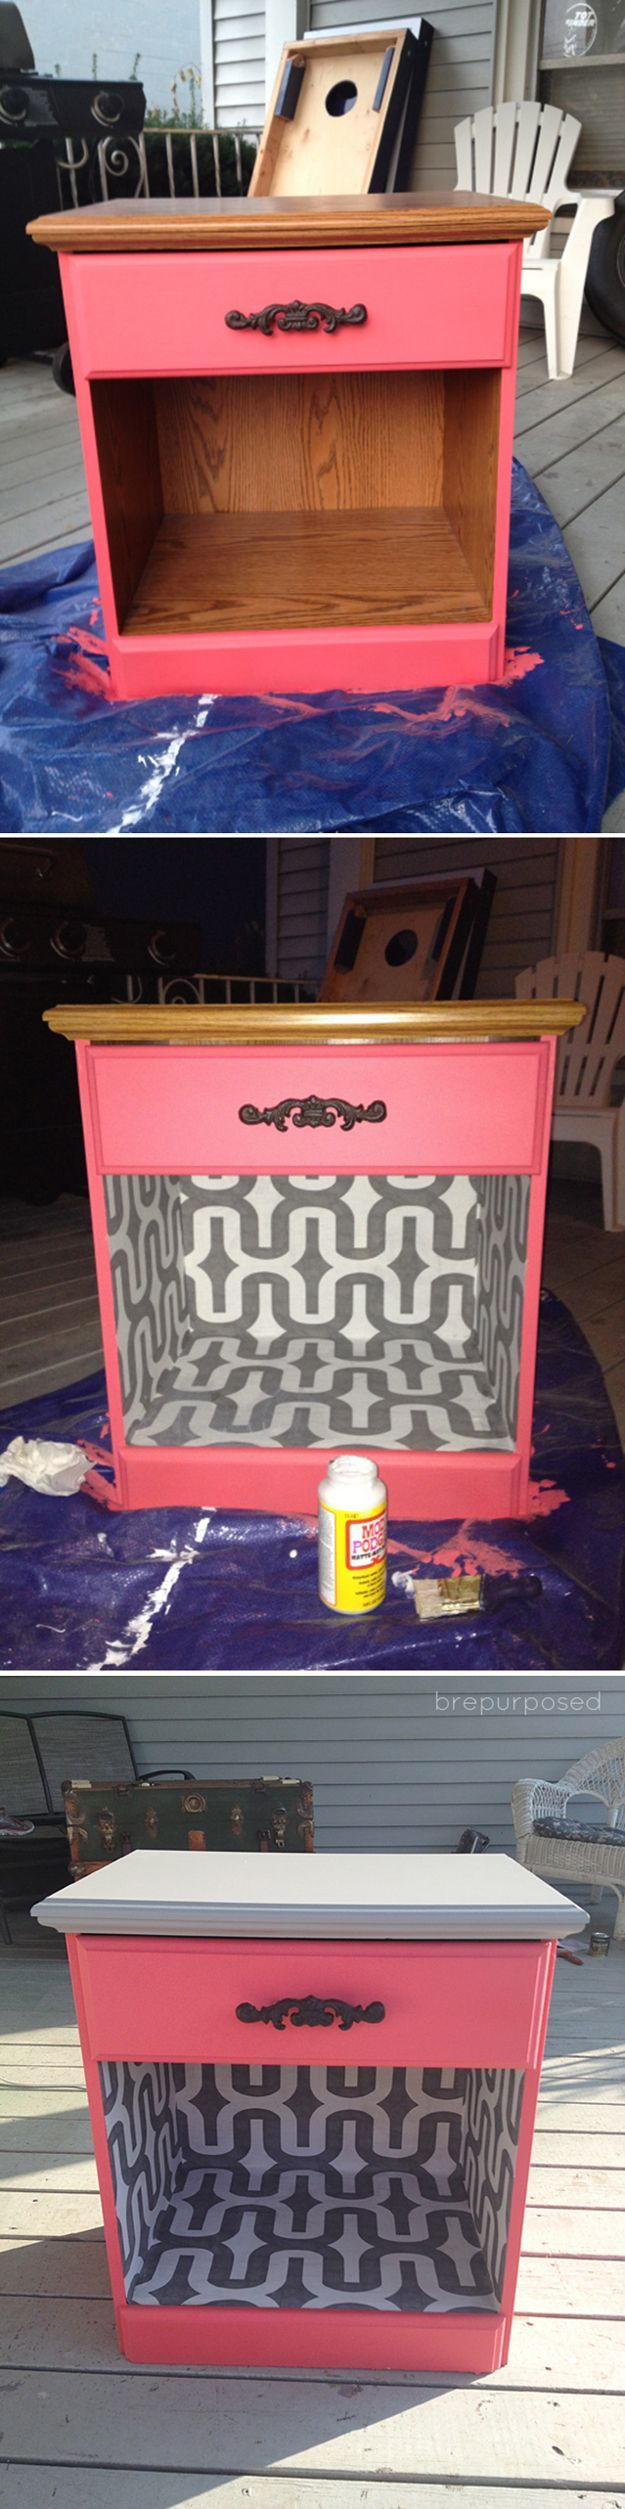 Simple Creative Homemade DIY Nightstand Ideas | $8 Night Stand Table by DIY Ready at http://diyready.com/17-creative-and-cheap-diy-nightstands/